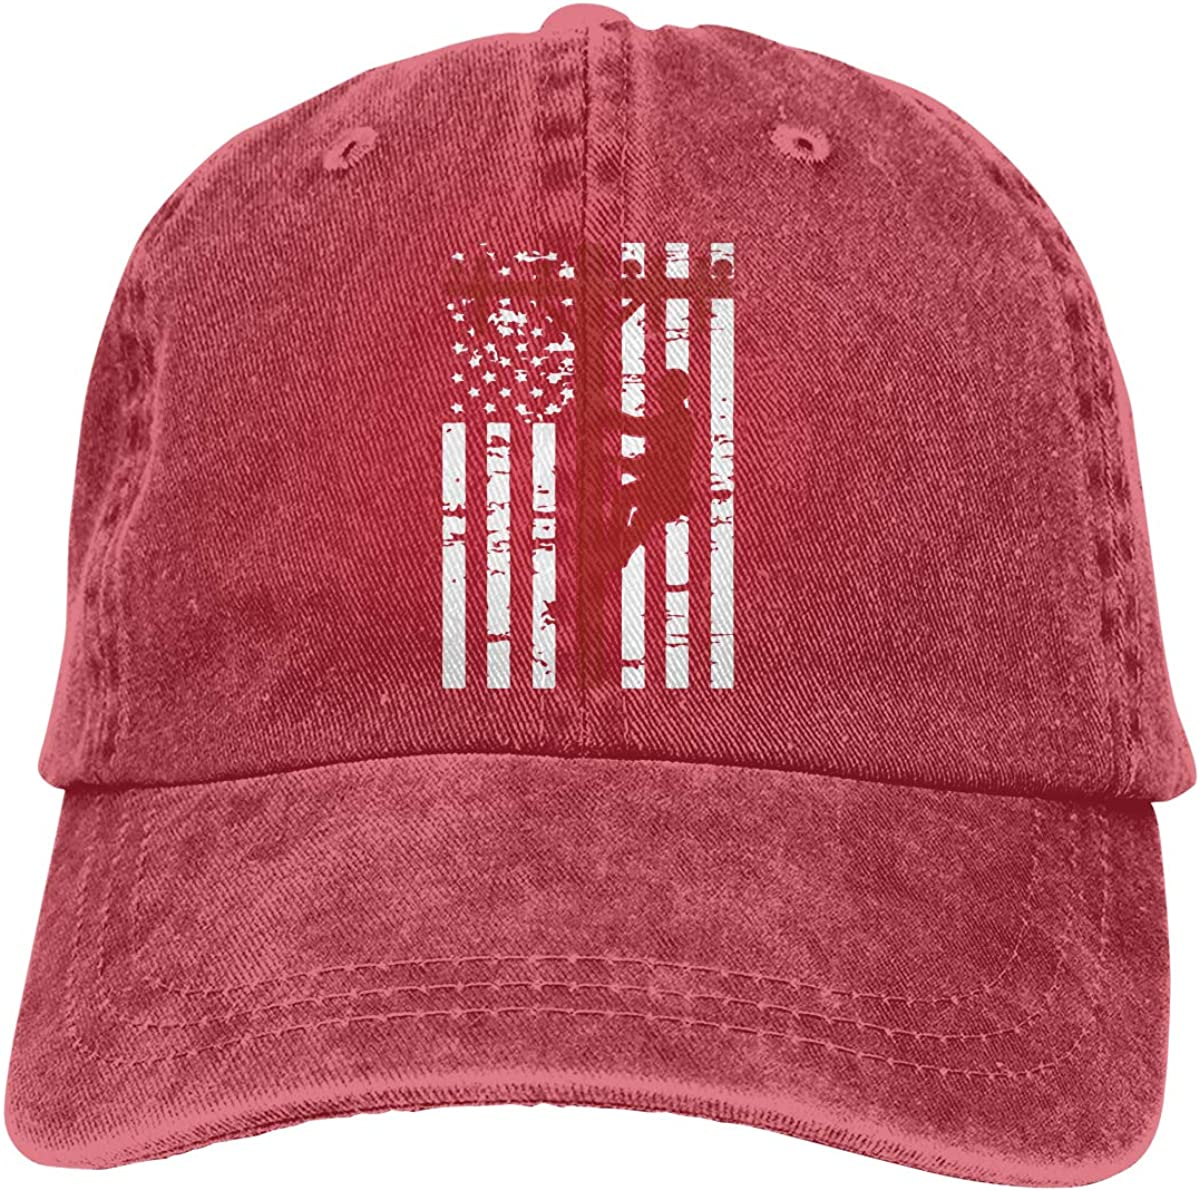 PMGM-C American Lineman Flag Adult Personalize Jeans Outdoor Sports Hat Adjustable Baseball Cap